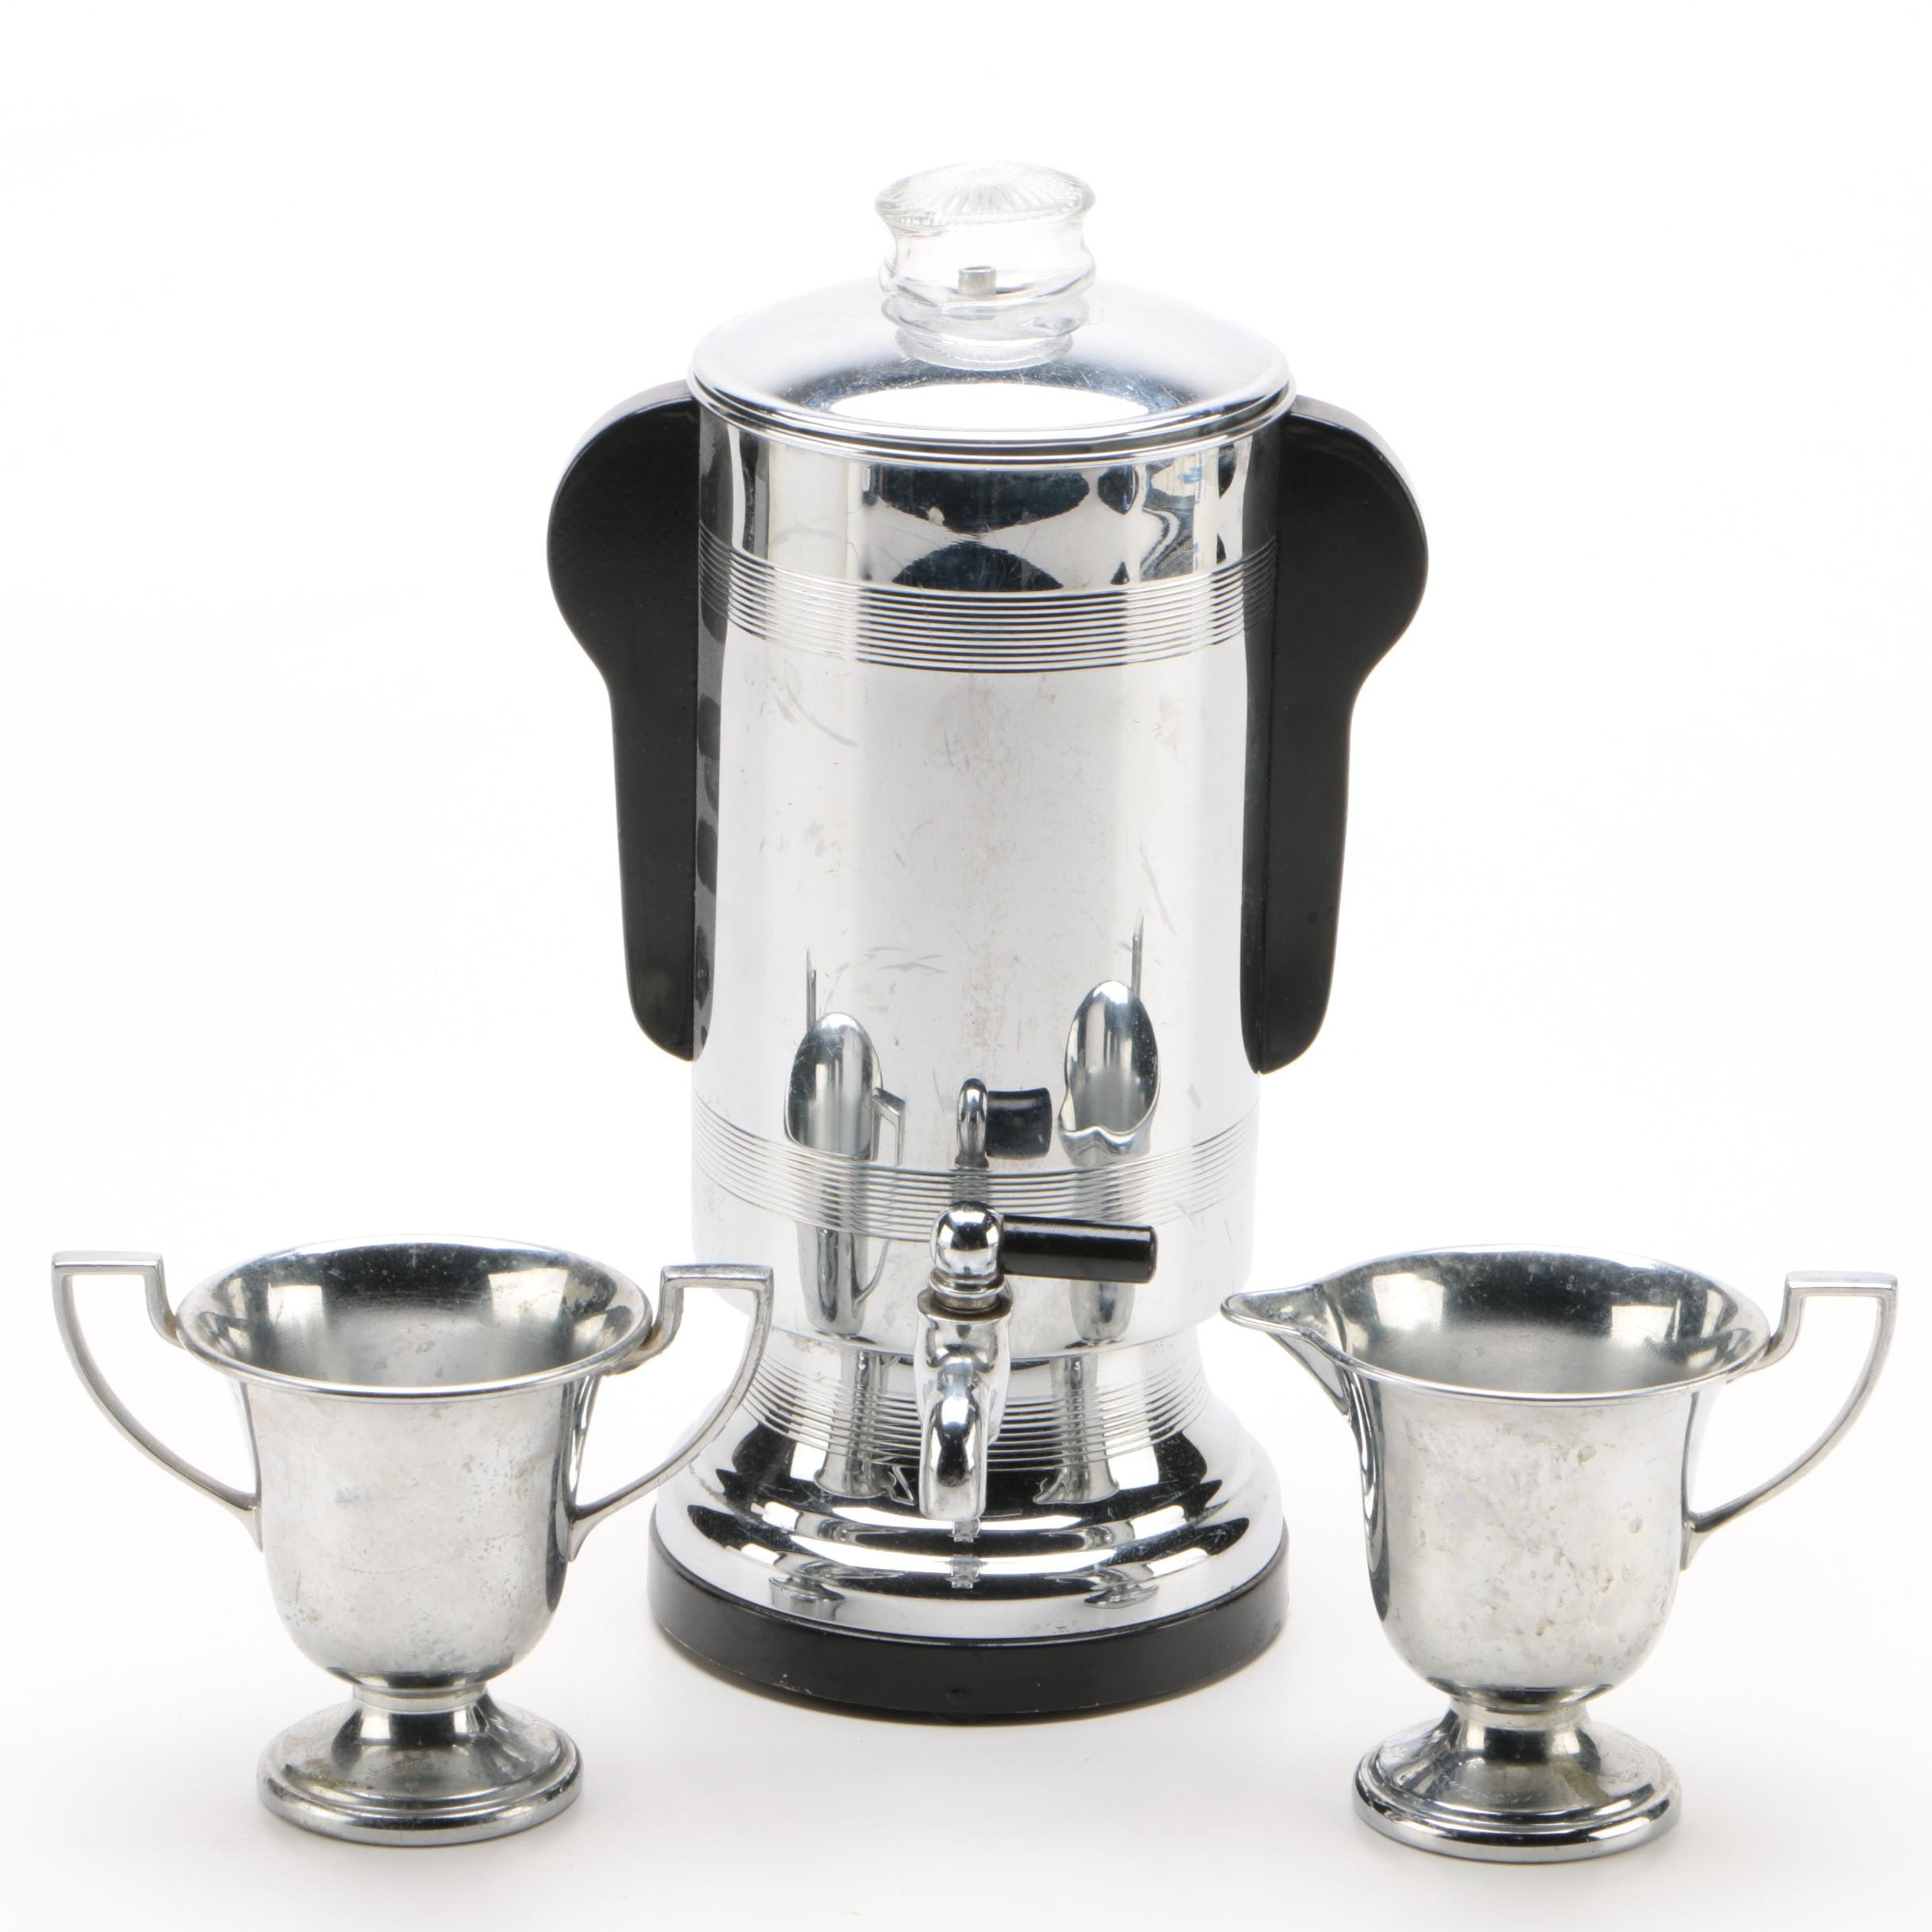 Manning, Bowman & Co Coffee Percolator with Faberware Creamer and Sugar